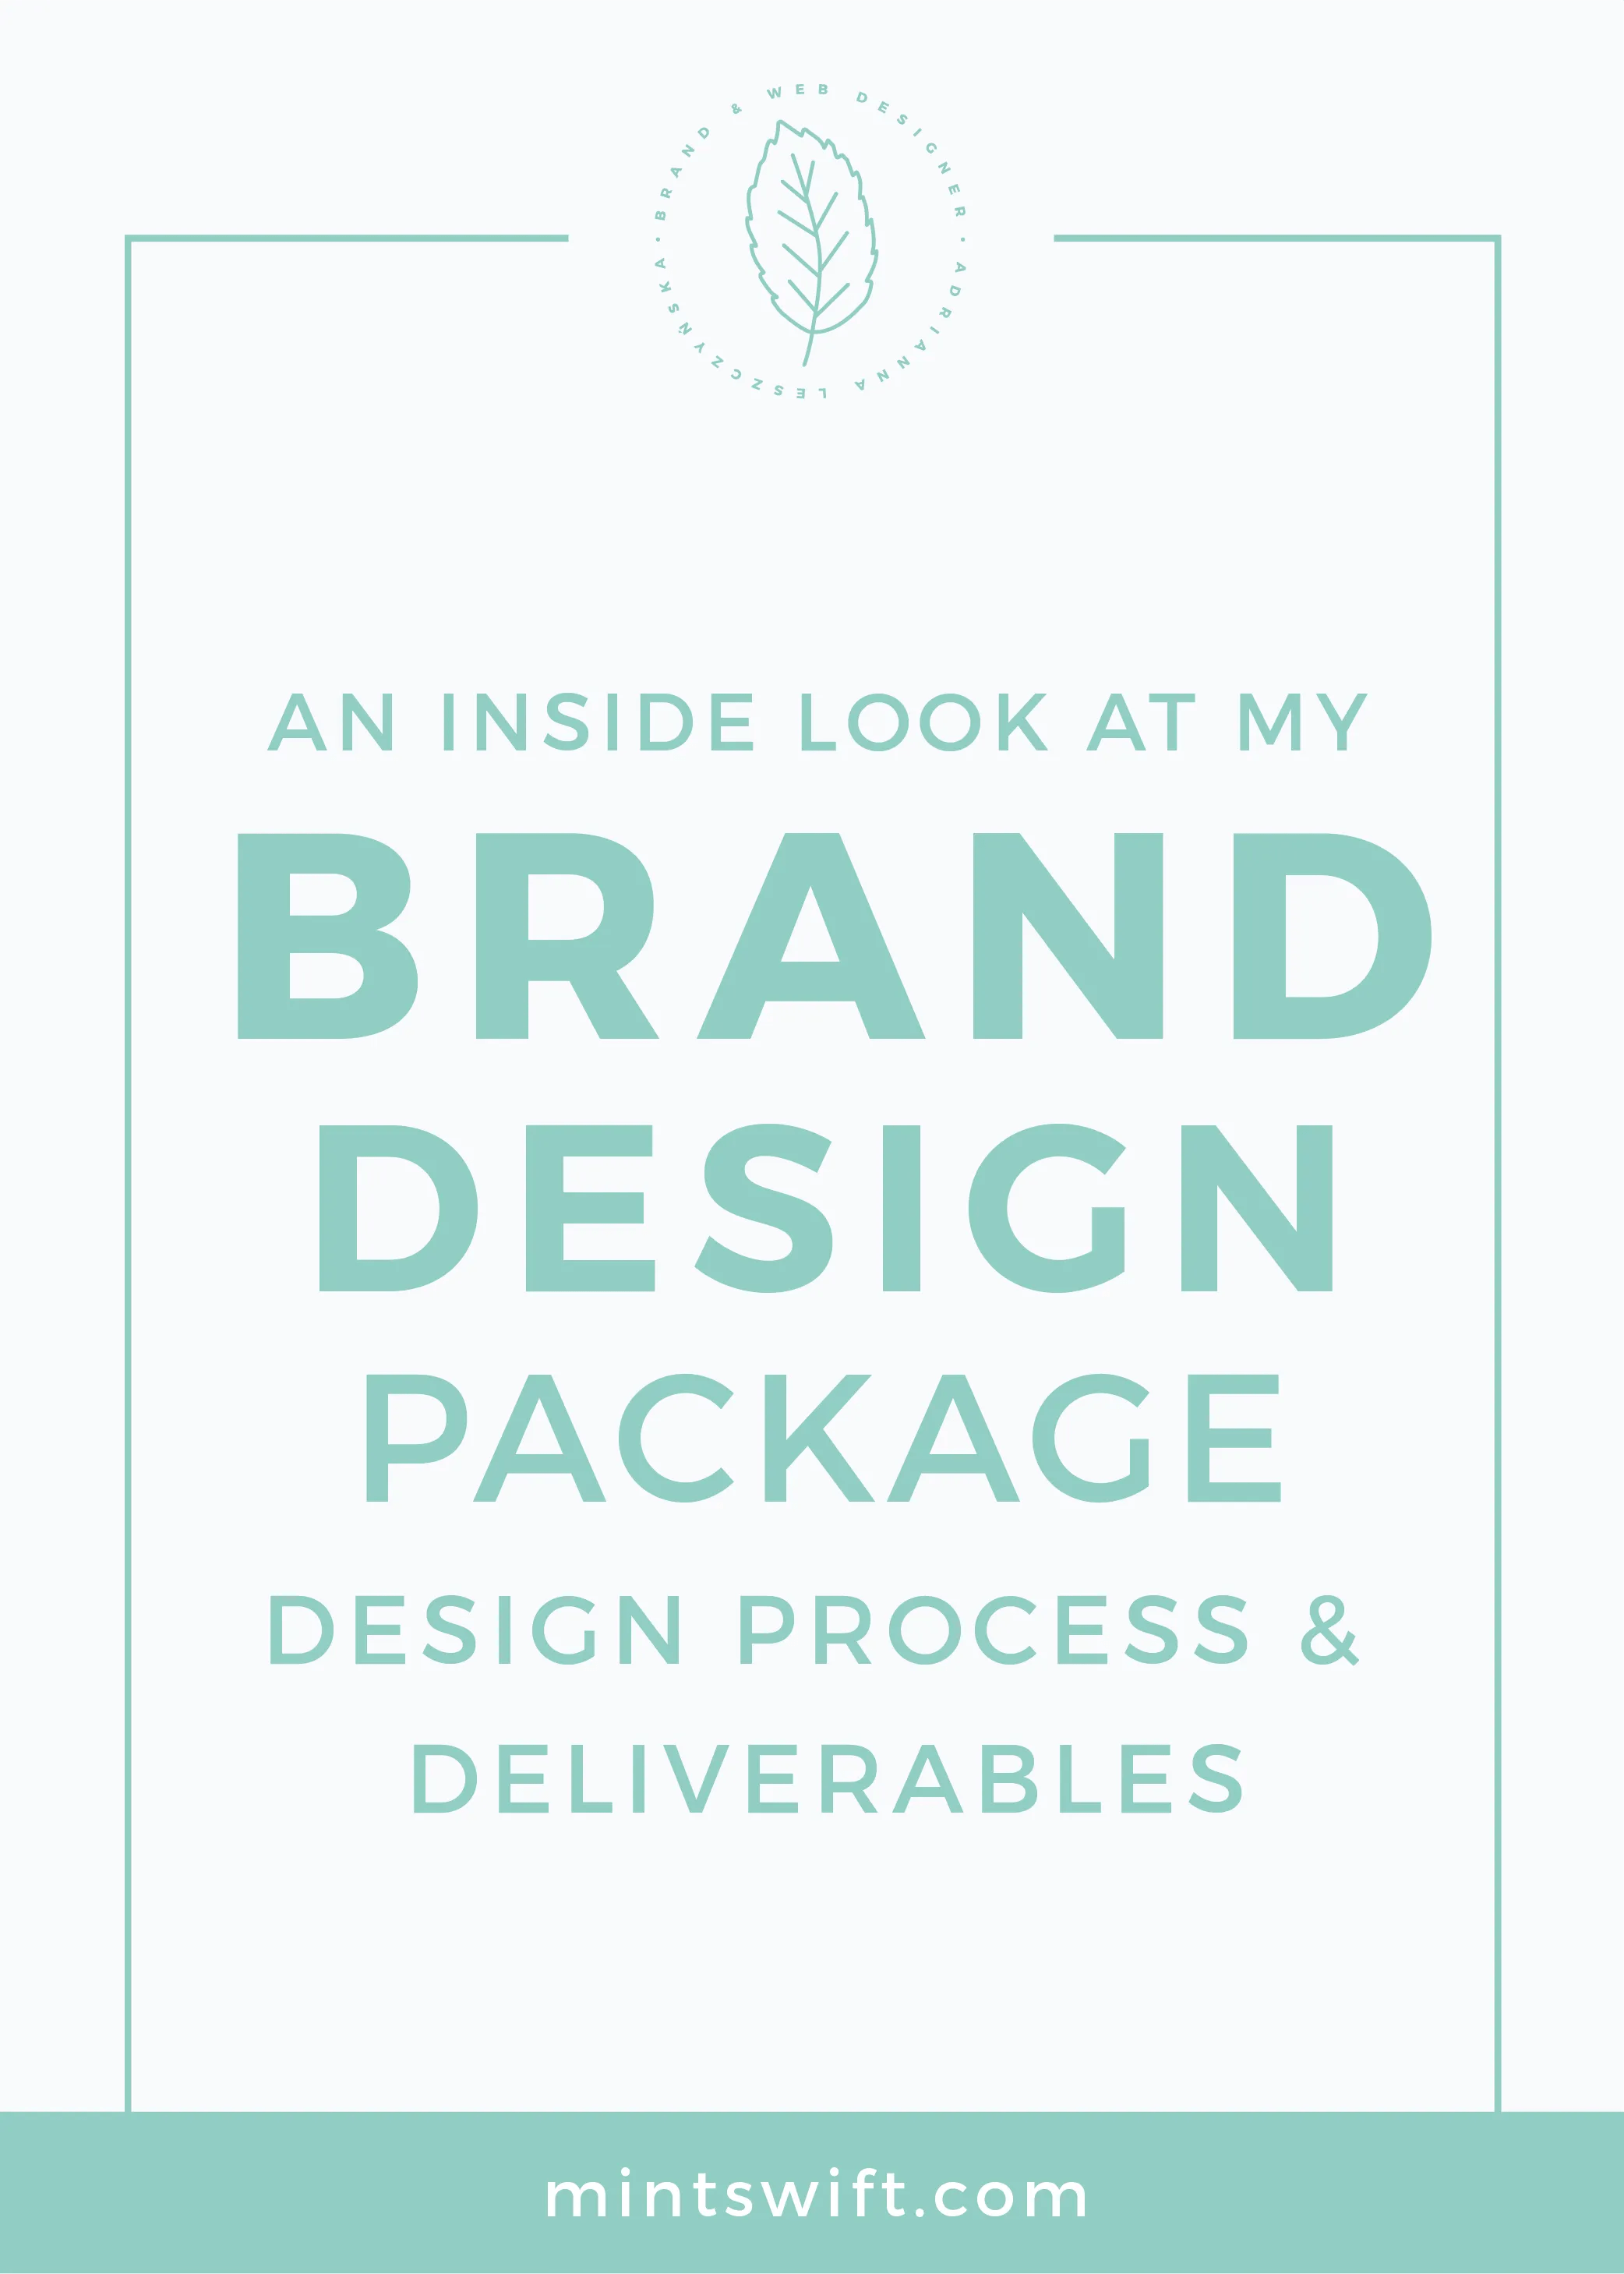 An Inside Look at My Brand Design Package Design Process & Deliverables MintSwift